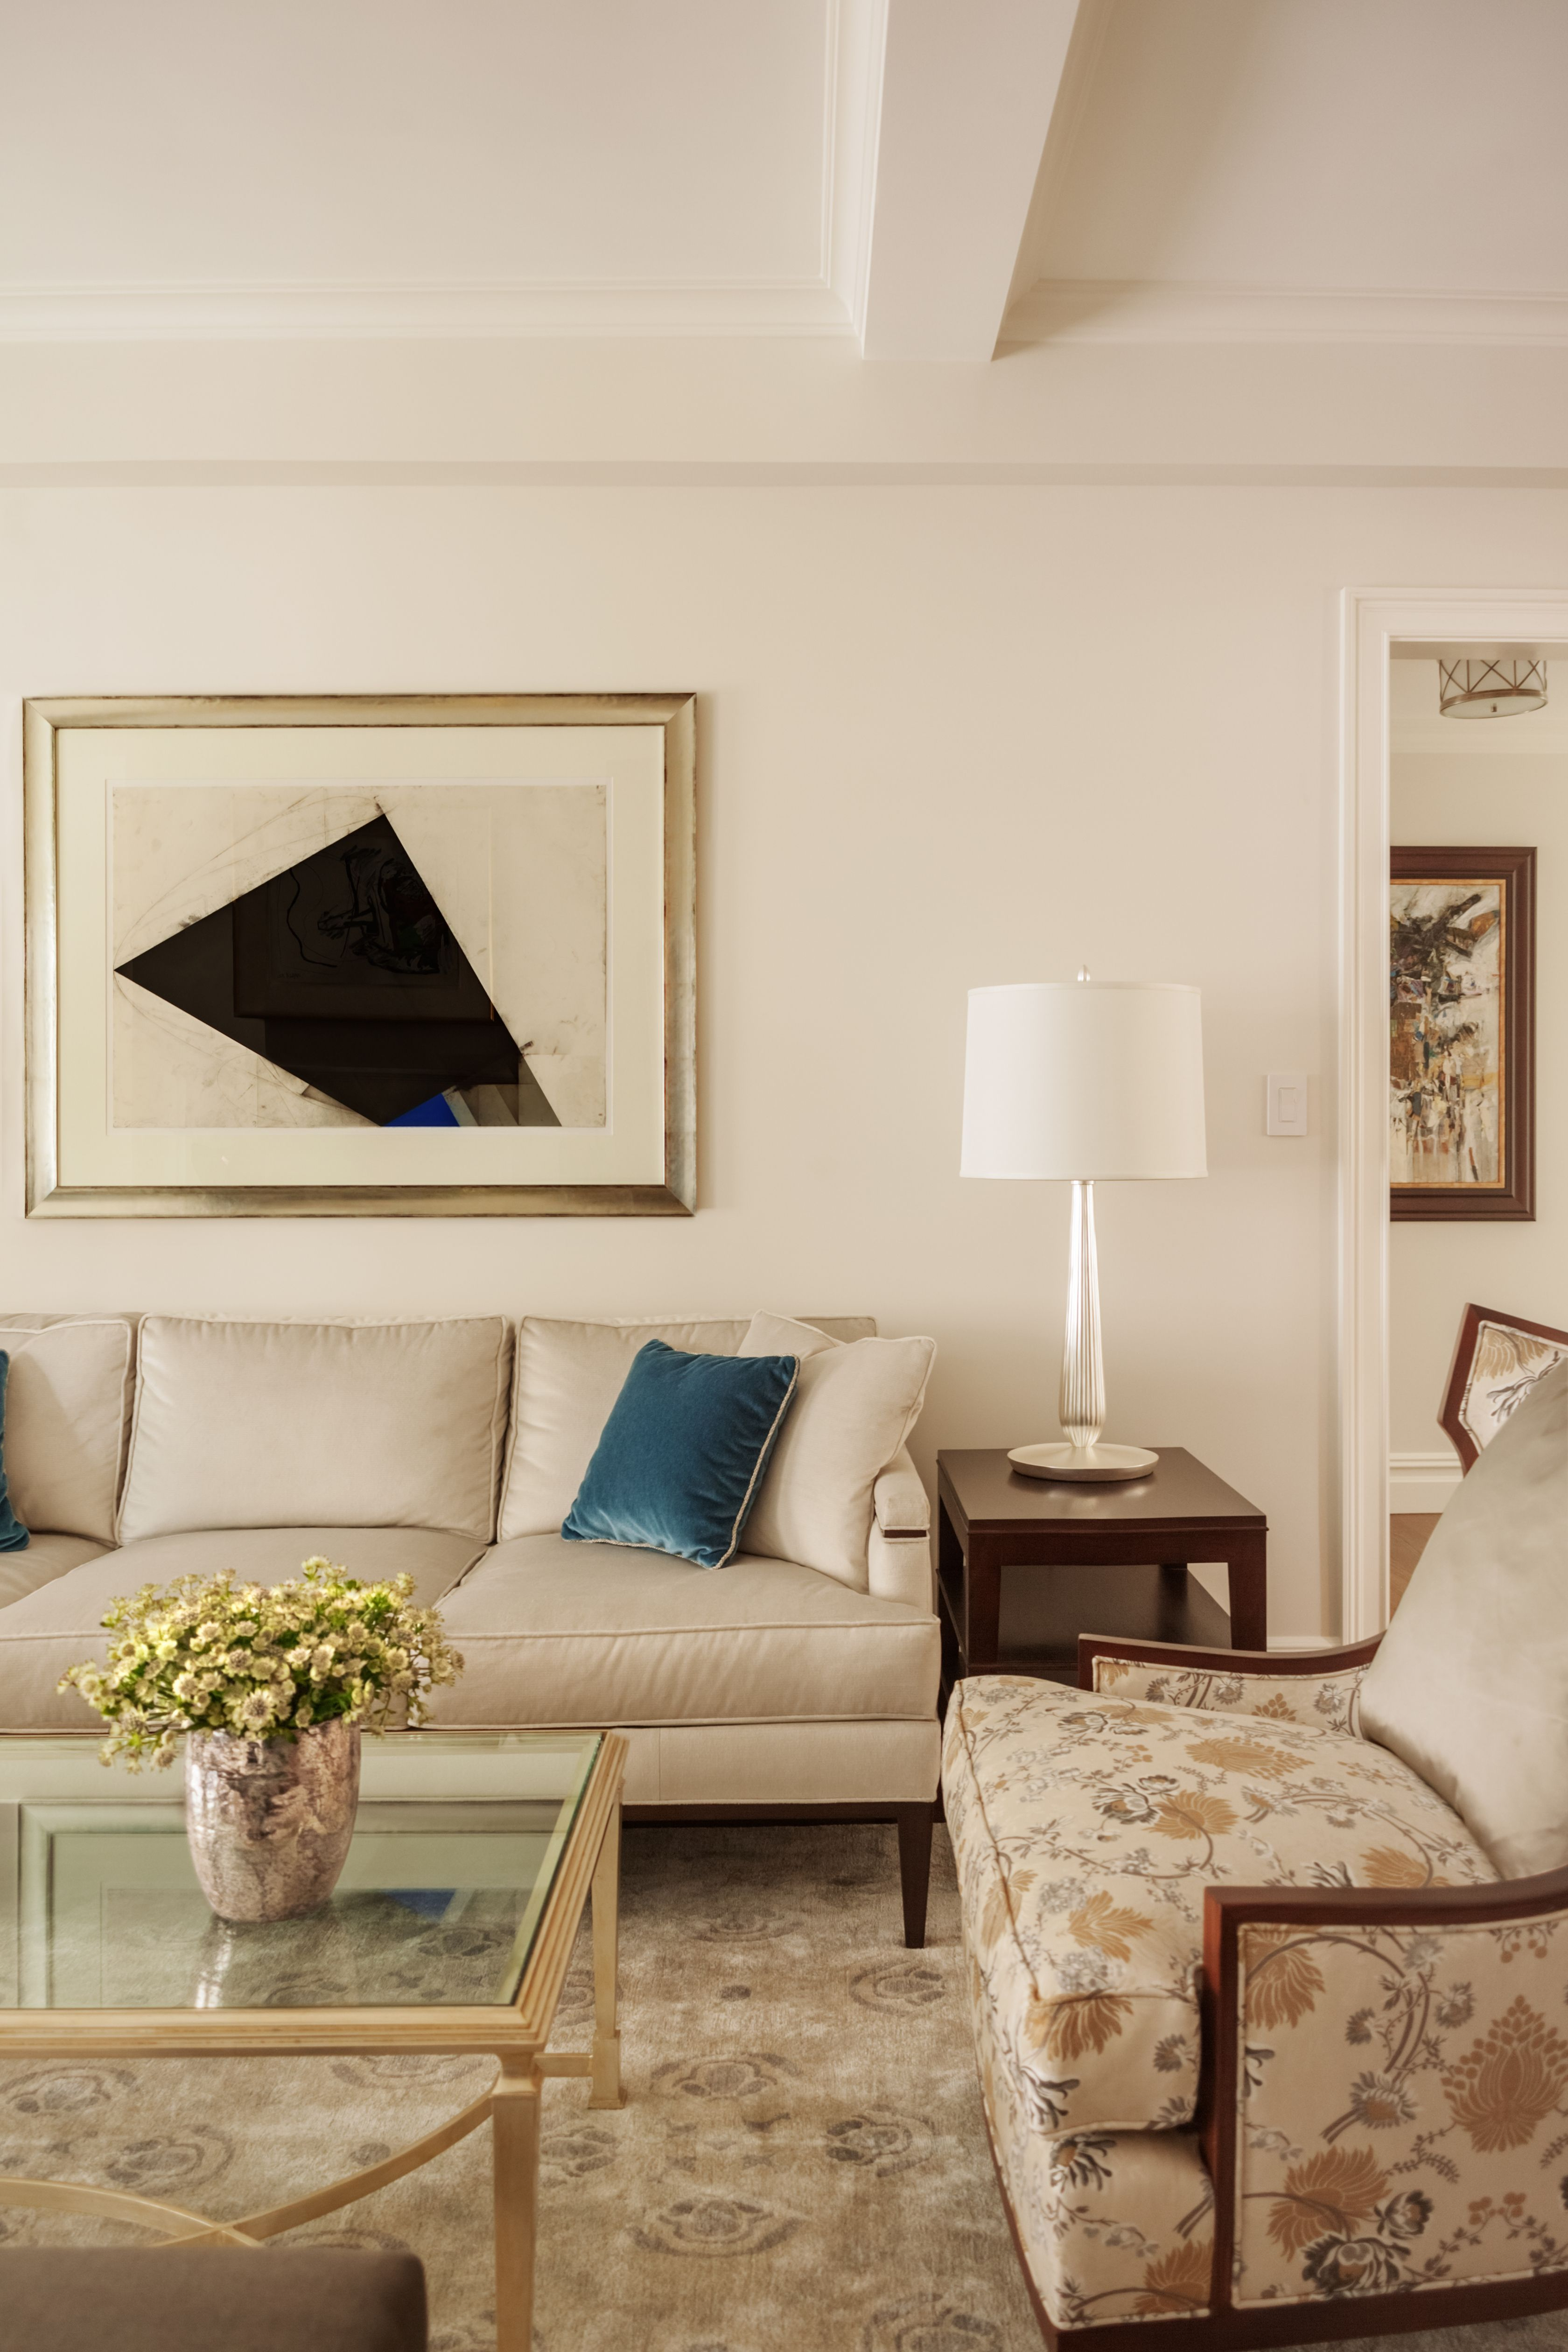 Side Lamps For Living Room Park Avenue Pied à Terre By Leonora Mahle Llc Sofa By Ny Custom